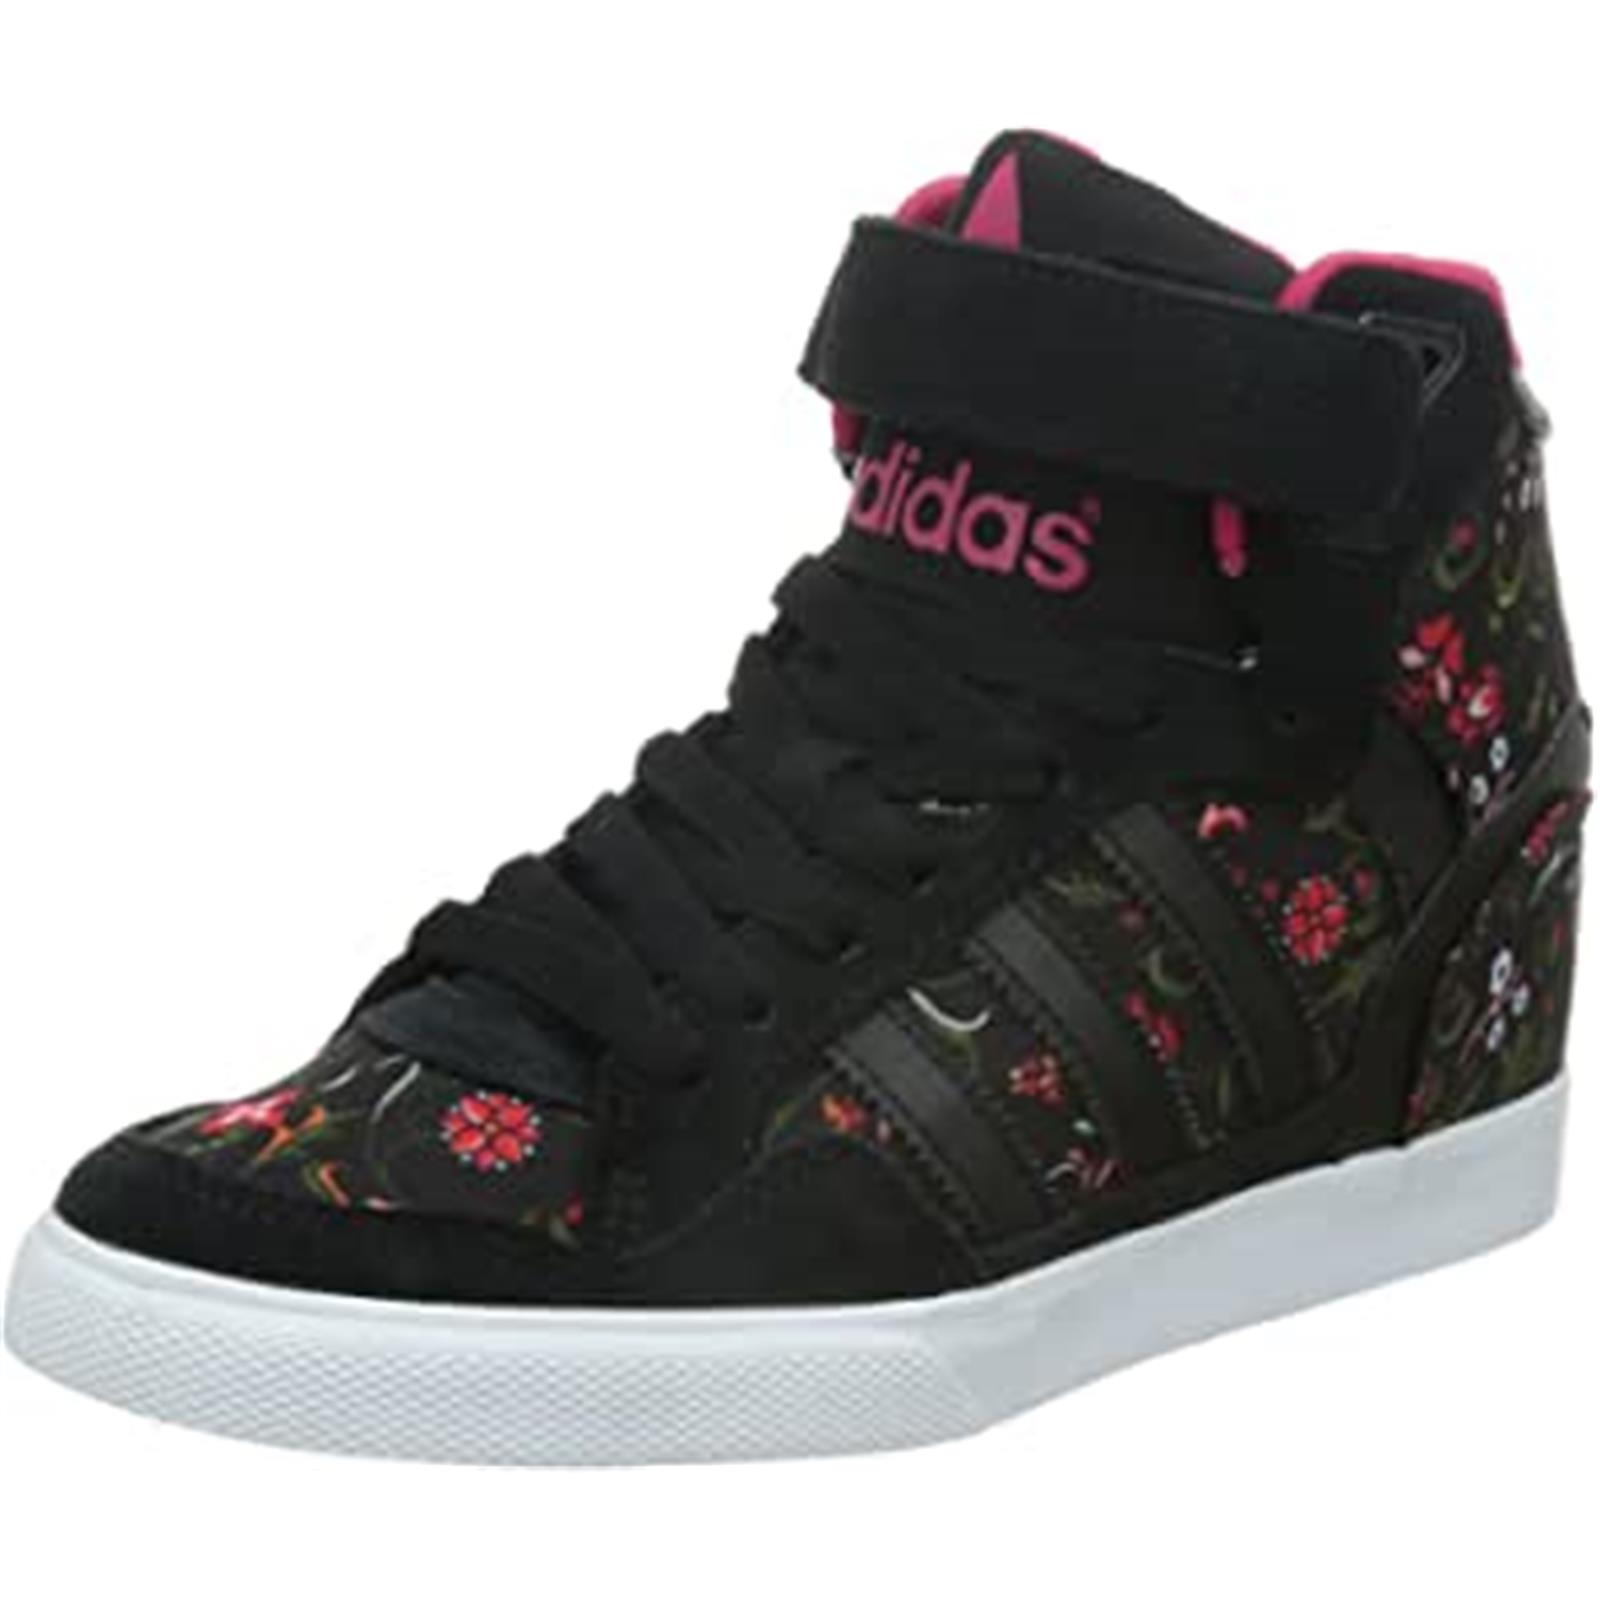 ADIDAS Scarpa Donna Adidas Extaball Up W